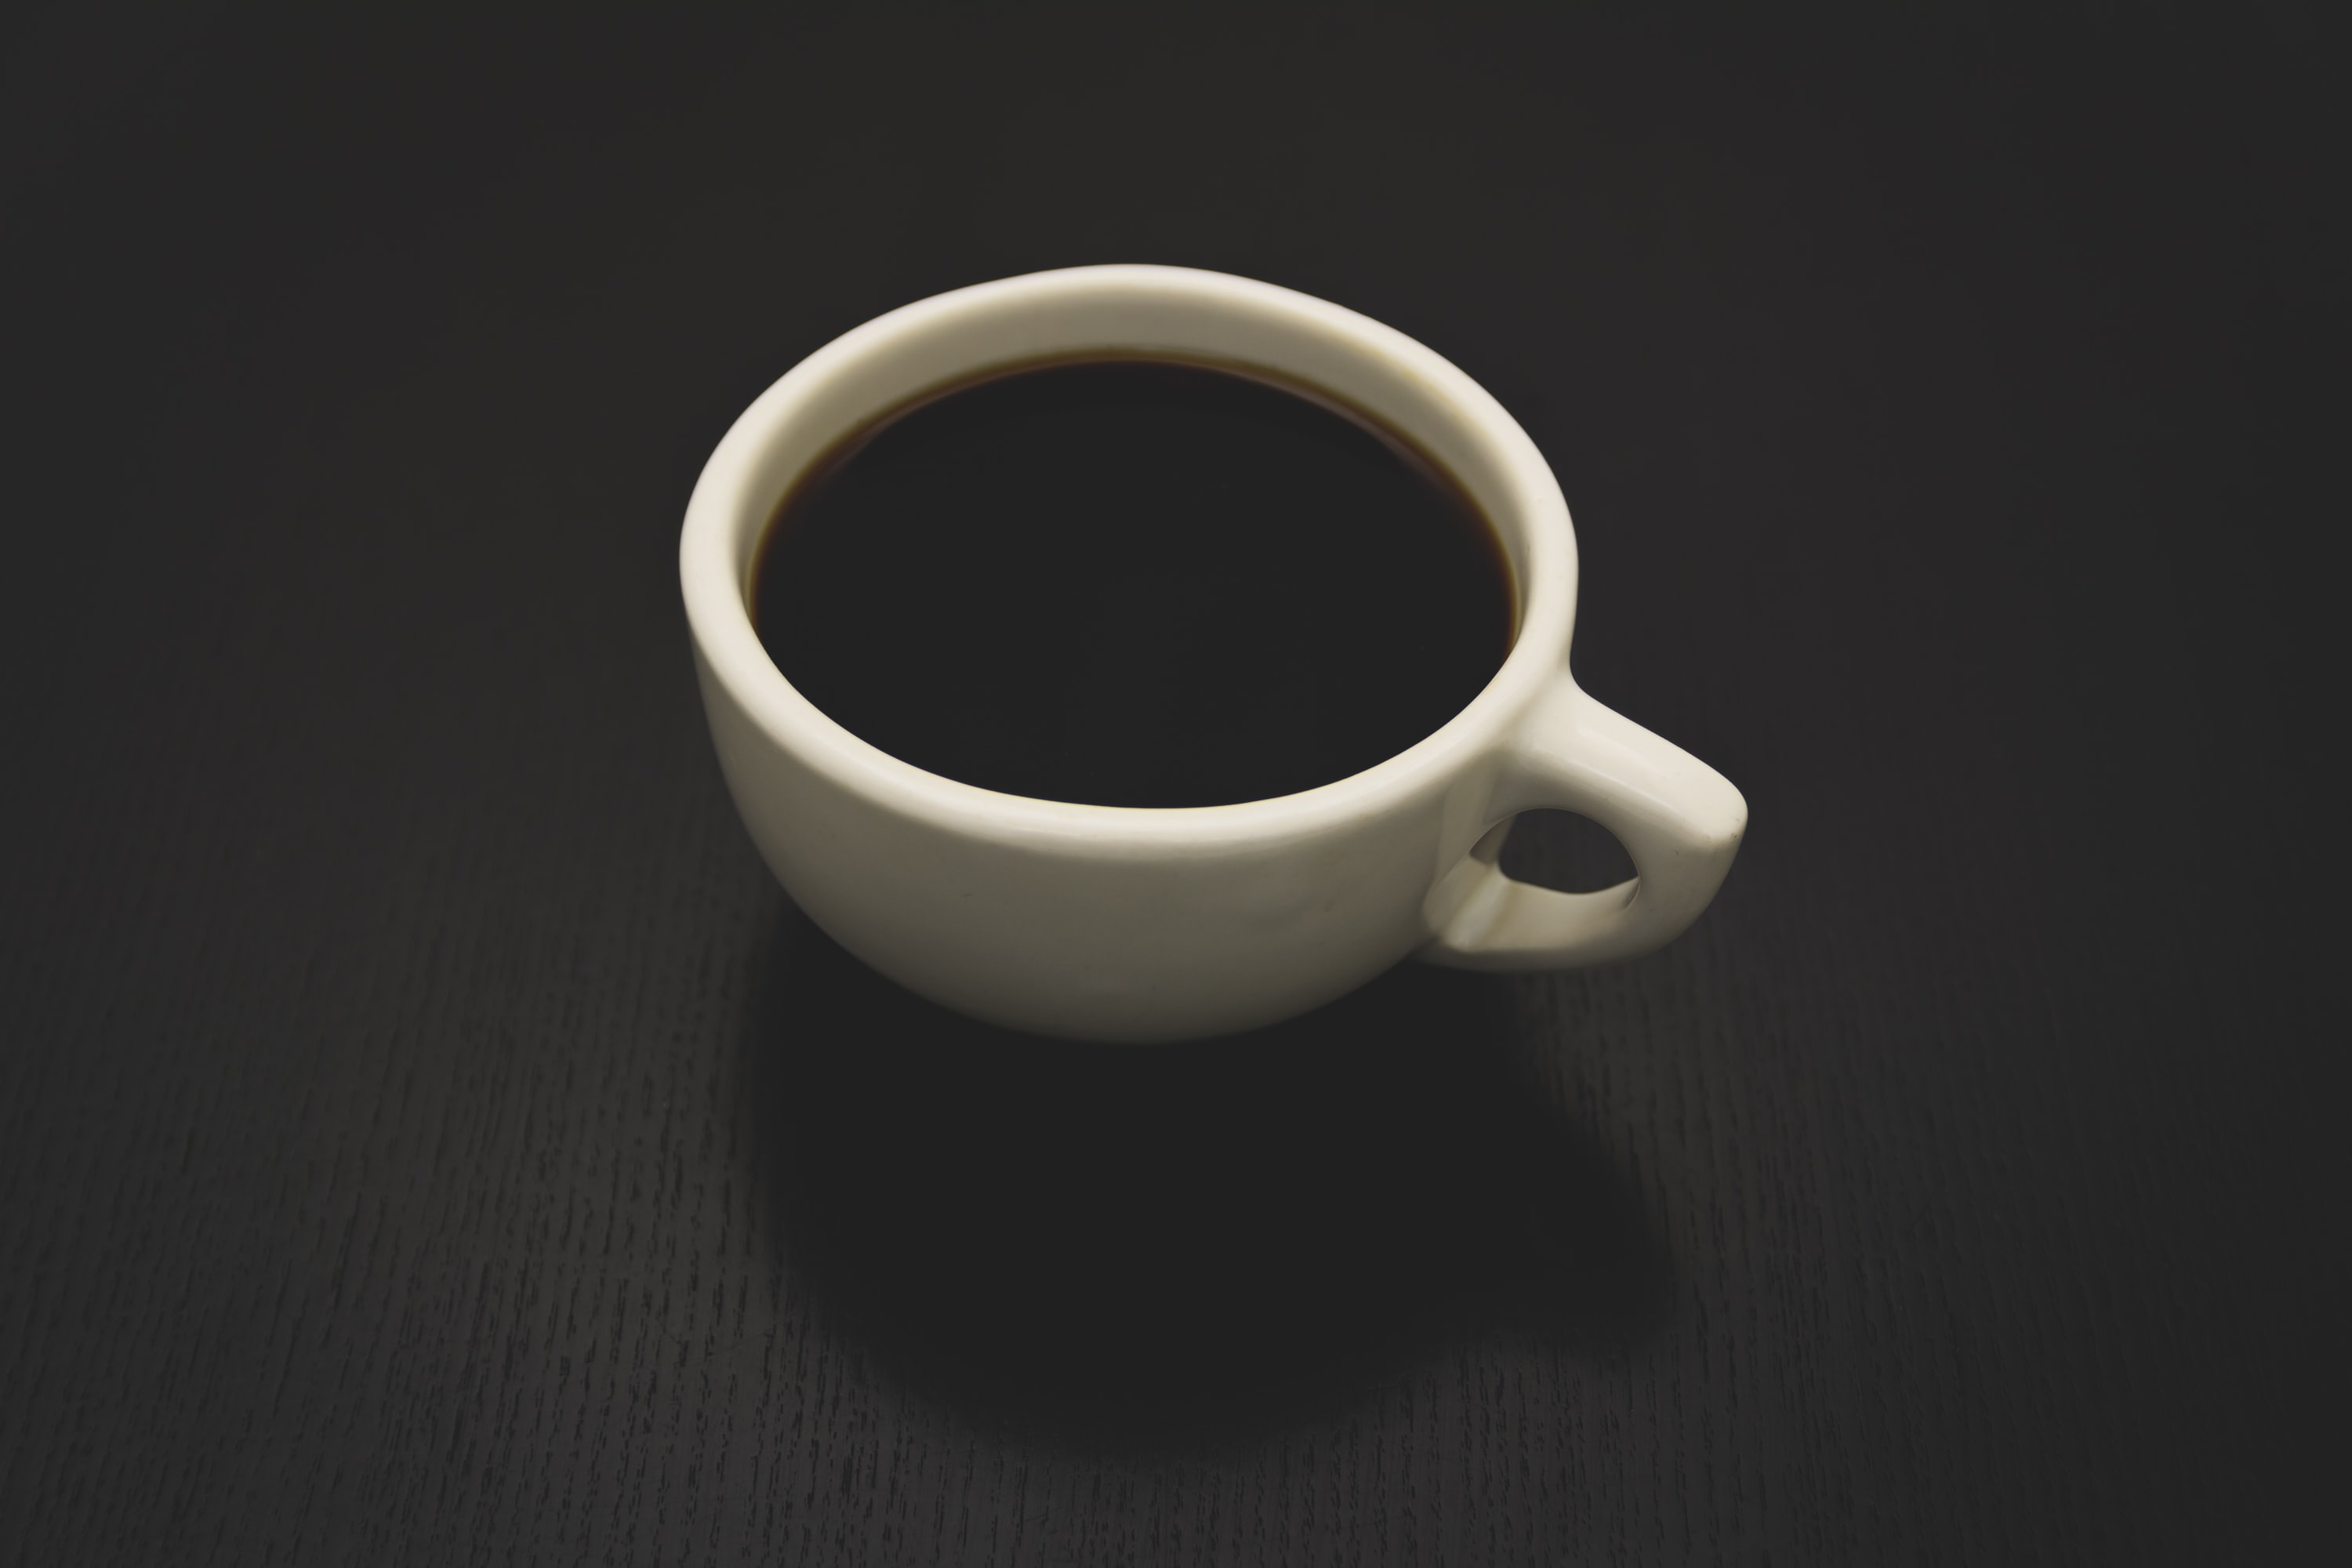 photo of white ceramic teacup filled with liquid